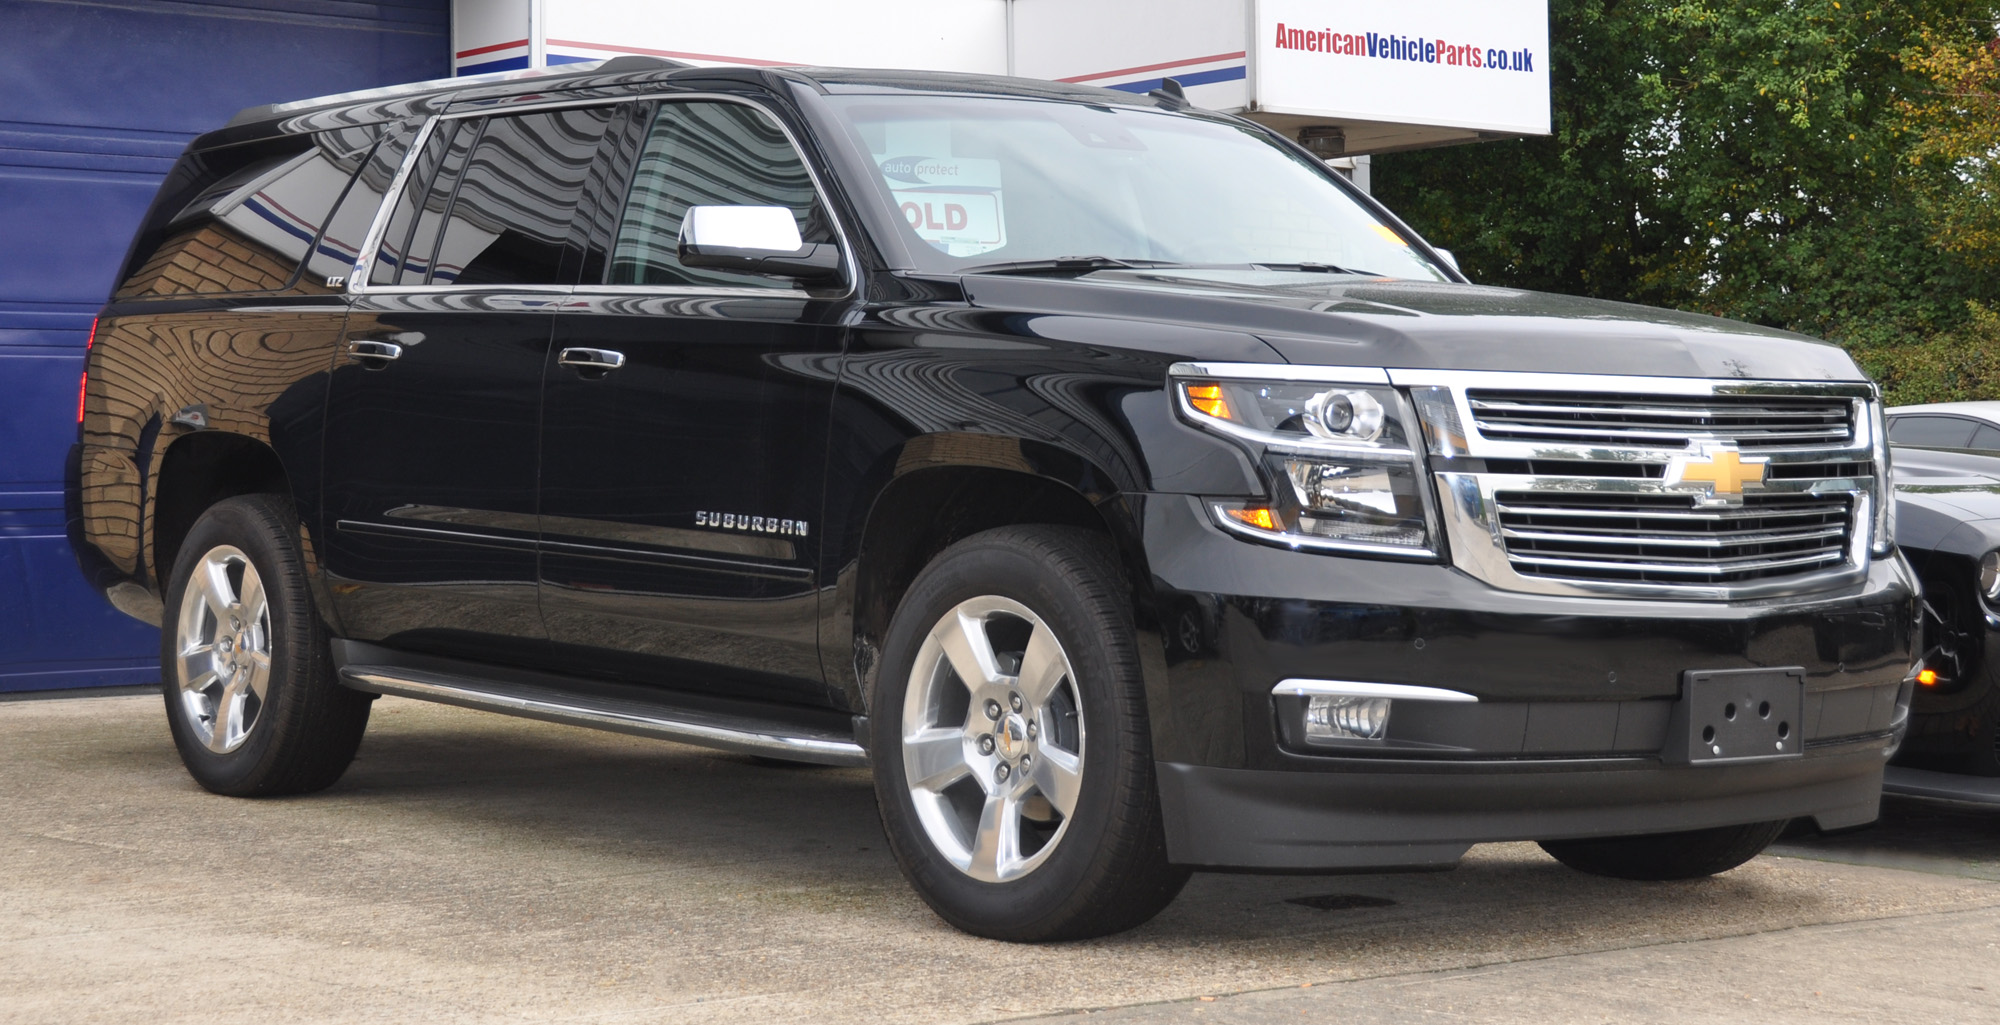 2015 Chevy Tahoe For Sale >> New American Vehicles to Order – David Boatwright Partnership | Dodge Ram | F-150 | Challenger